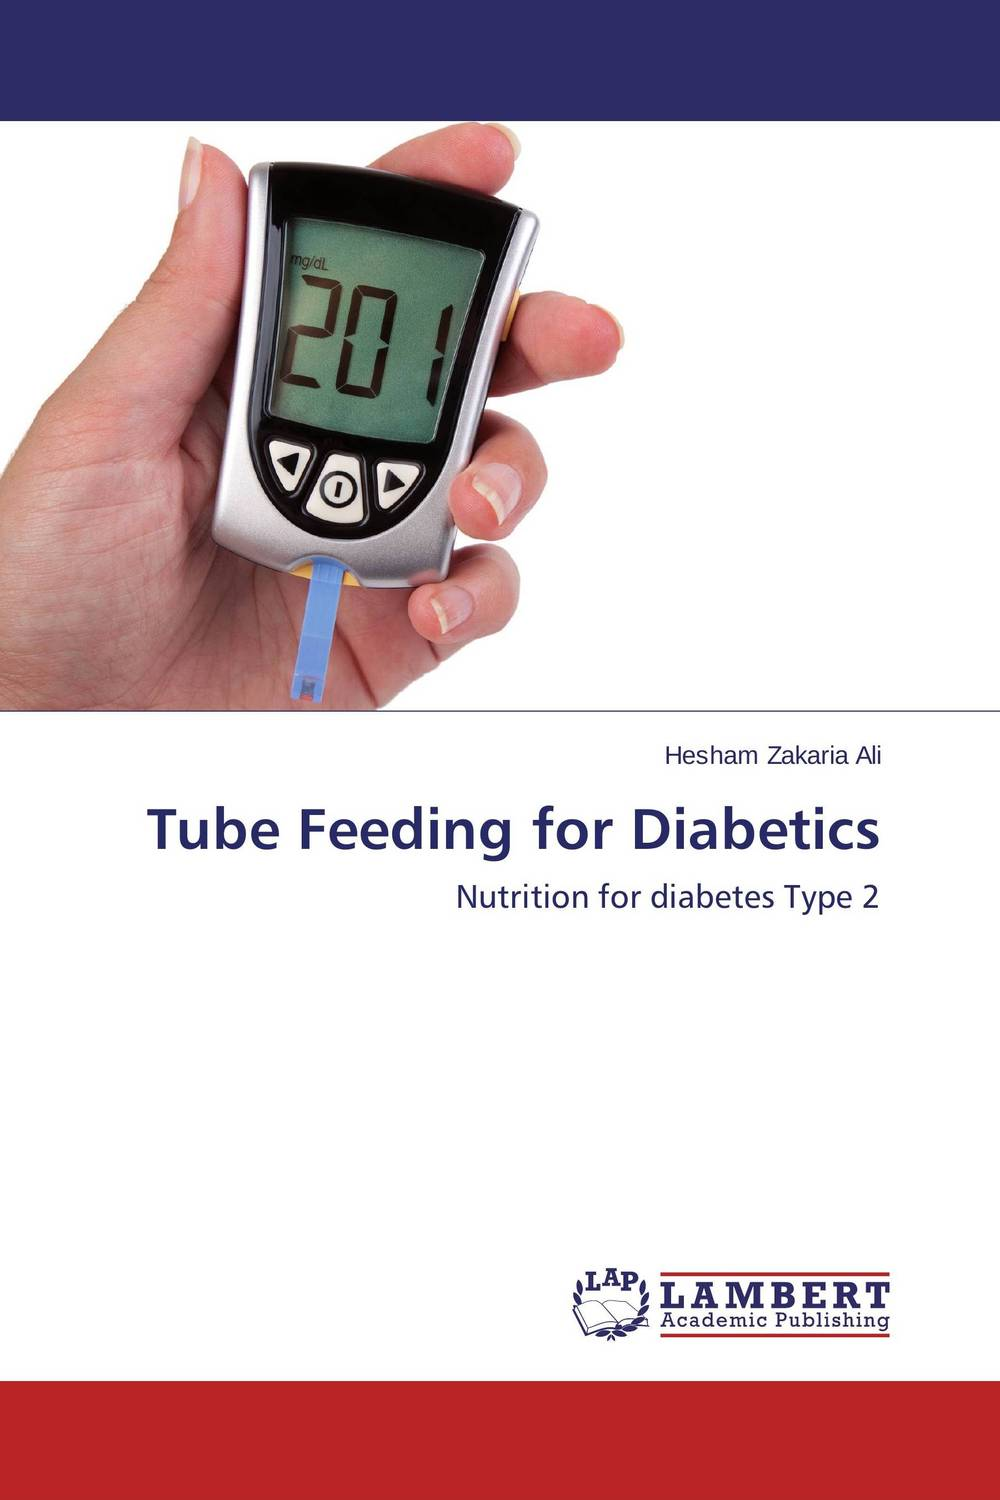 Tube Feeding for Diabetics 5 bottles 500pills diabetes treatment radix rehmannia extract effects on central nervous system and cardiovascular function